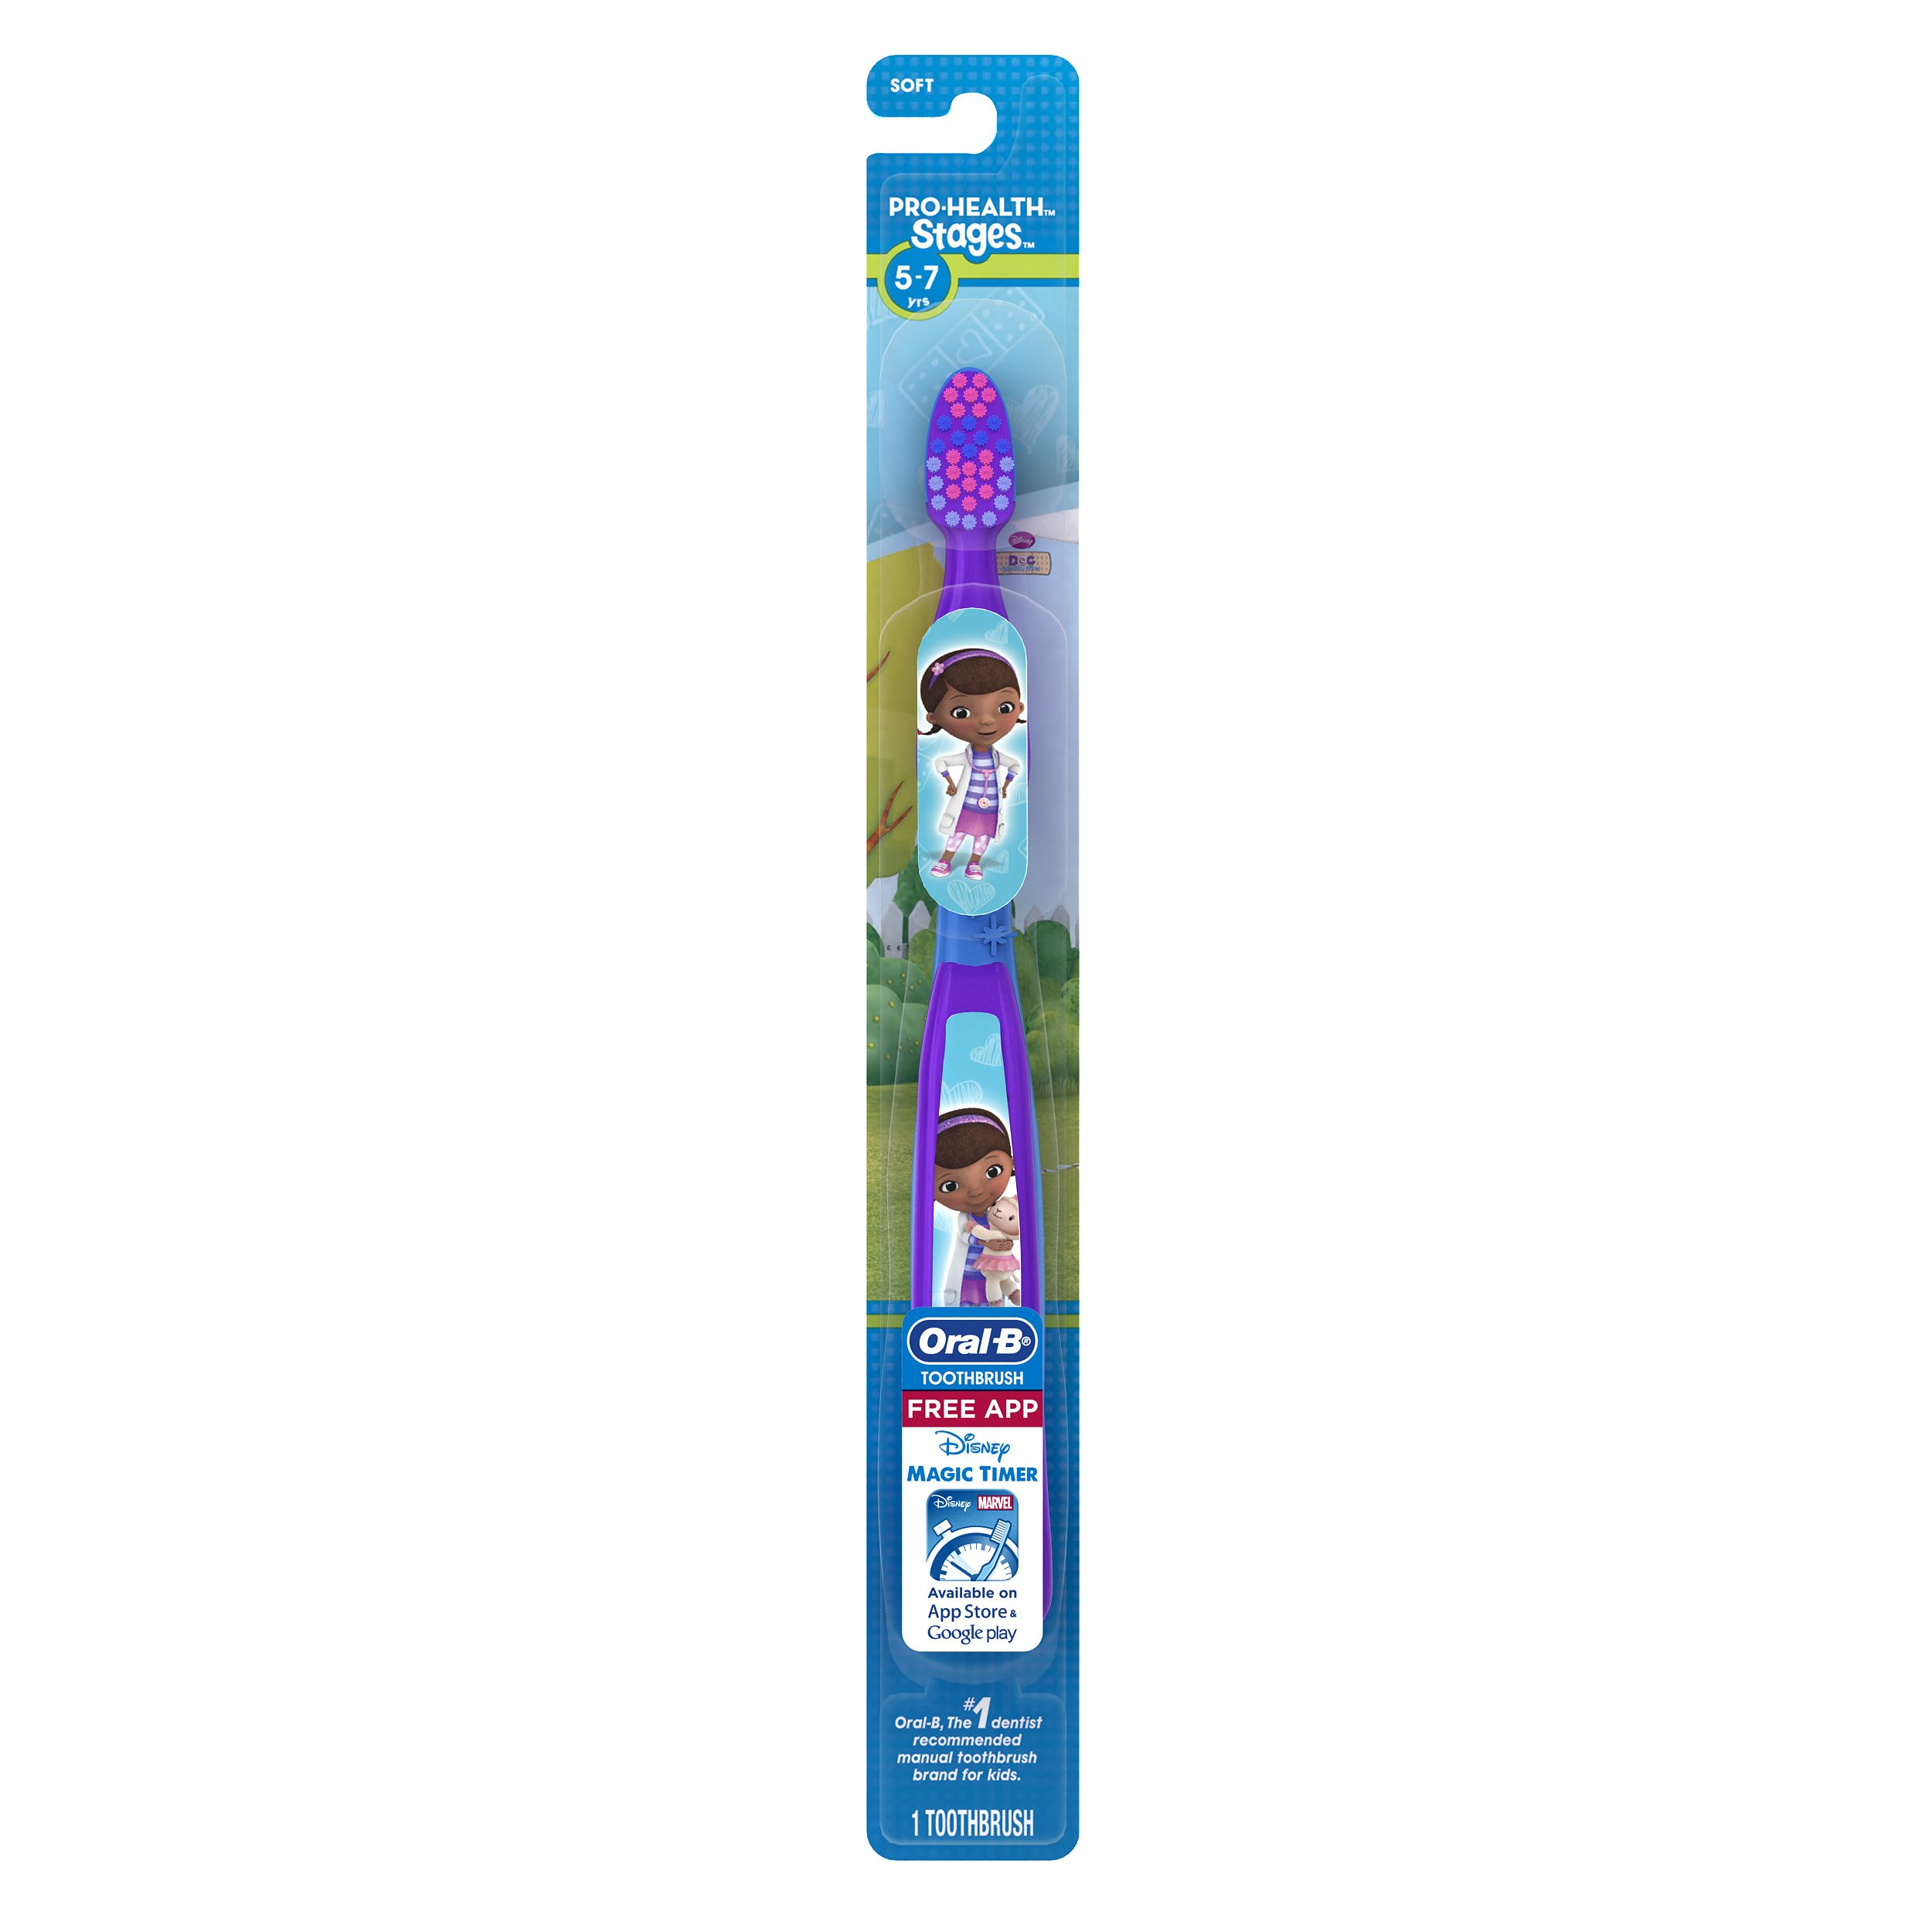 Oral-B Pro Health Stages Toothbrush, Pack Of 6 (Packaging May Vary) Ages 5-7